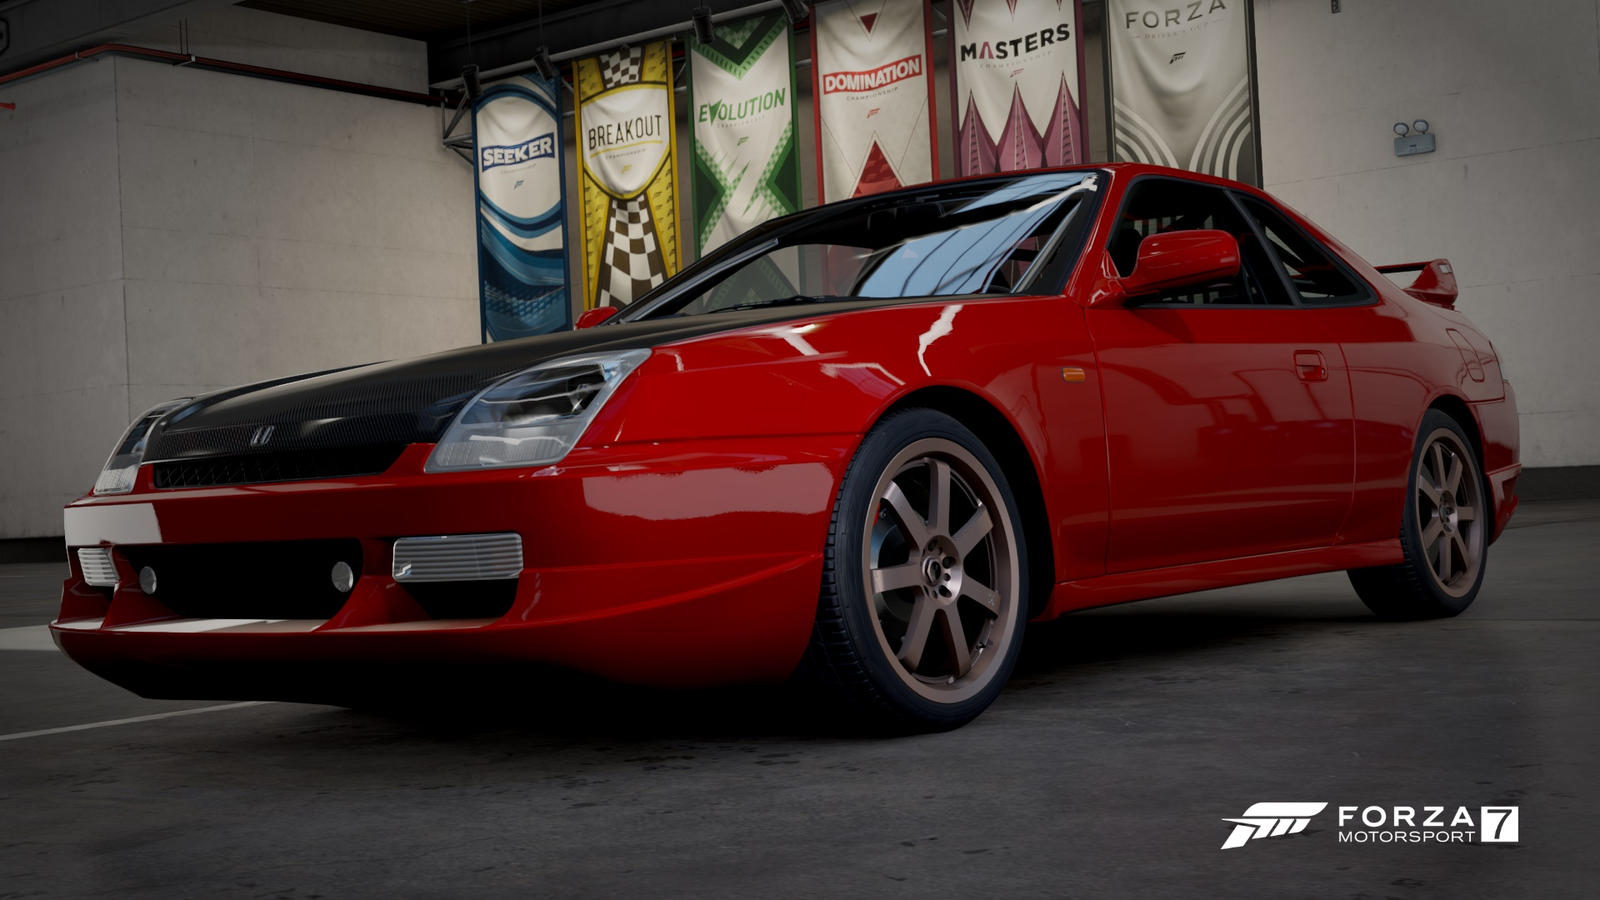 jts signature rides 2000 honda prelude type sh by streethawk555 on deviantart jts signature rides 2000 honda